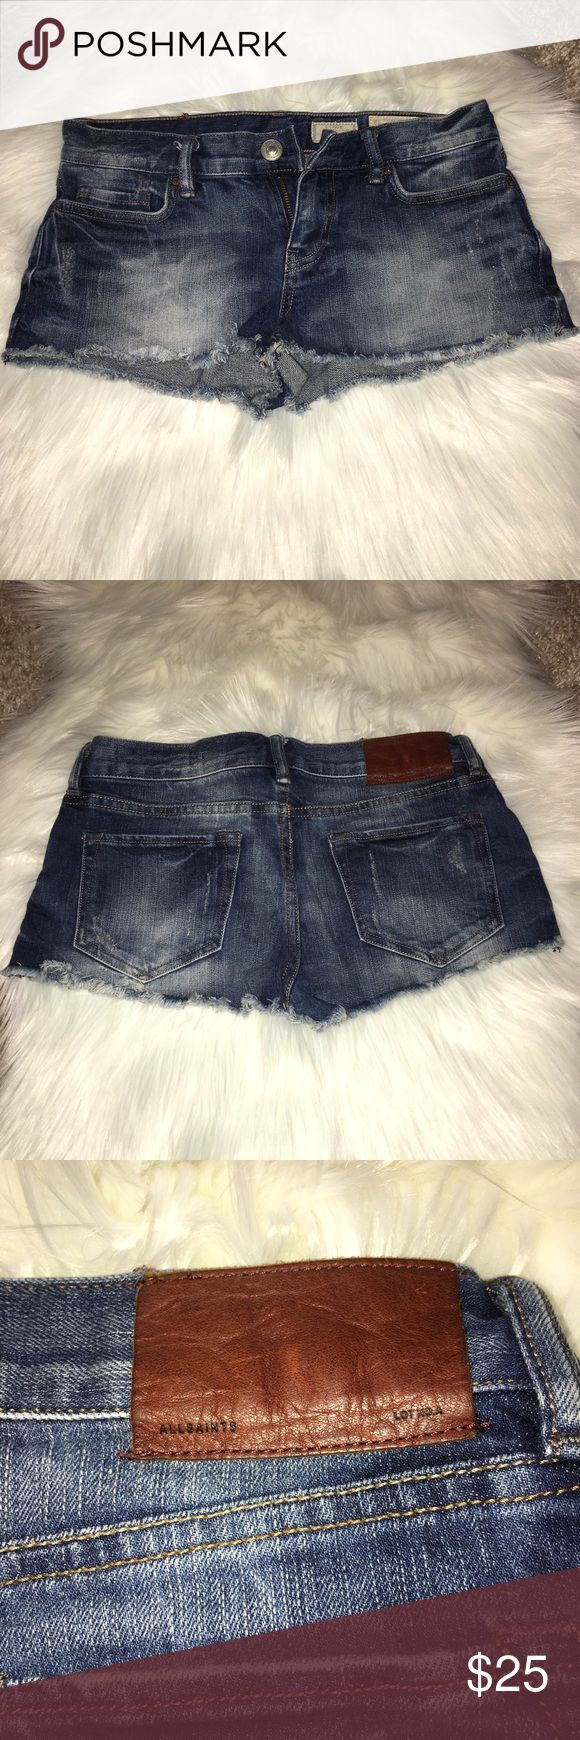 """AllSaints Distressed Blue """"Hot Pant"""" Jean Shorts AllSaints Distressed Blue """"Hot Pant"""" Jean Shorts MINt condition absolutely no signs of wear. Wore during 5 day Miami Beach trip over Labor Day (3/4x). Bootie shorts with a distressed look. All Saints Shorts Jean Shorts"""